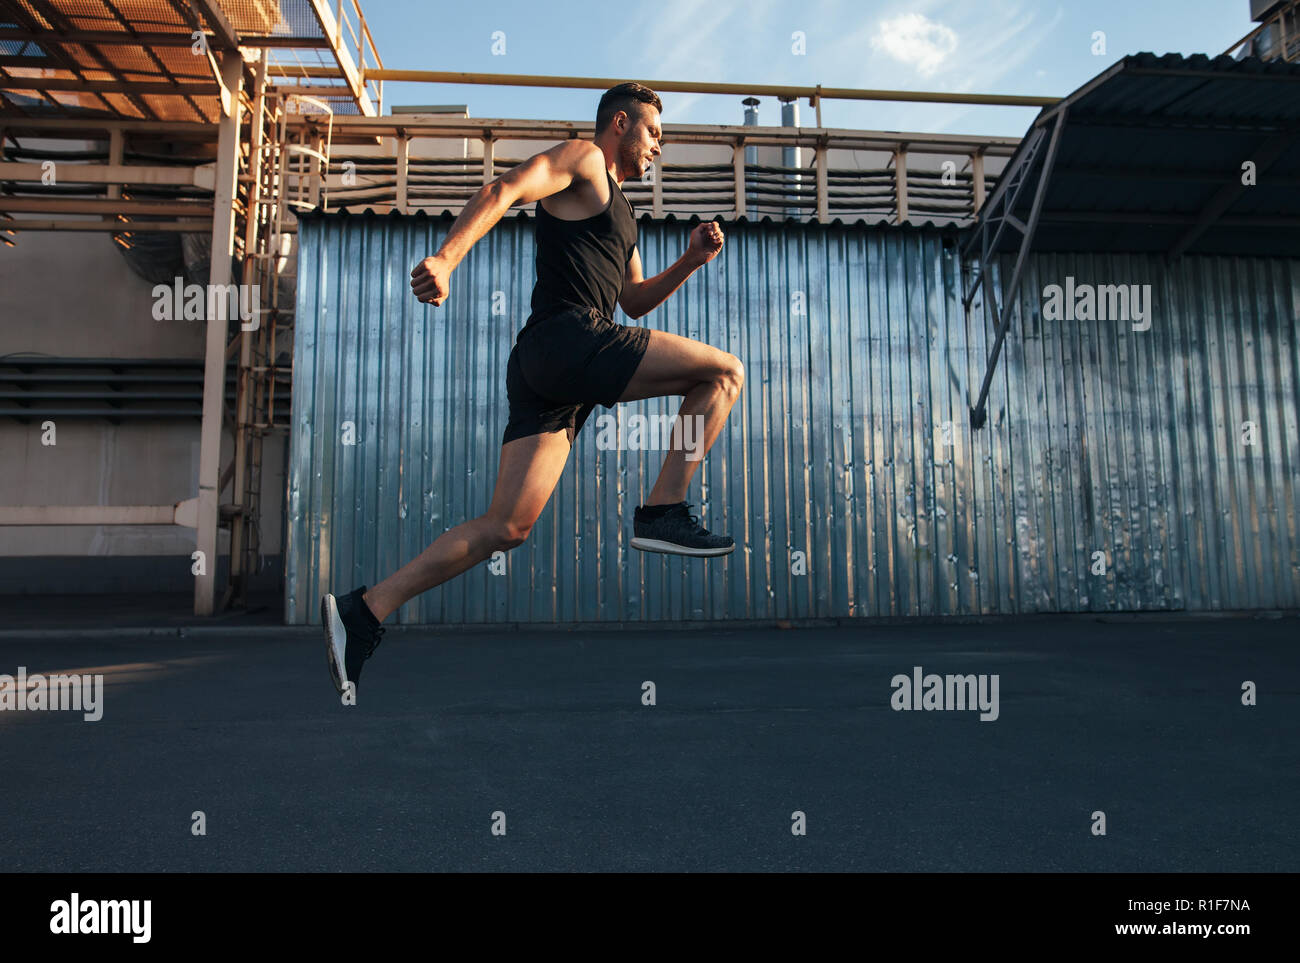 Handsome young man running in ndustrial building background.  runner, jogger, fitness activity - Stock Image